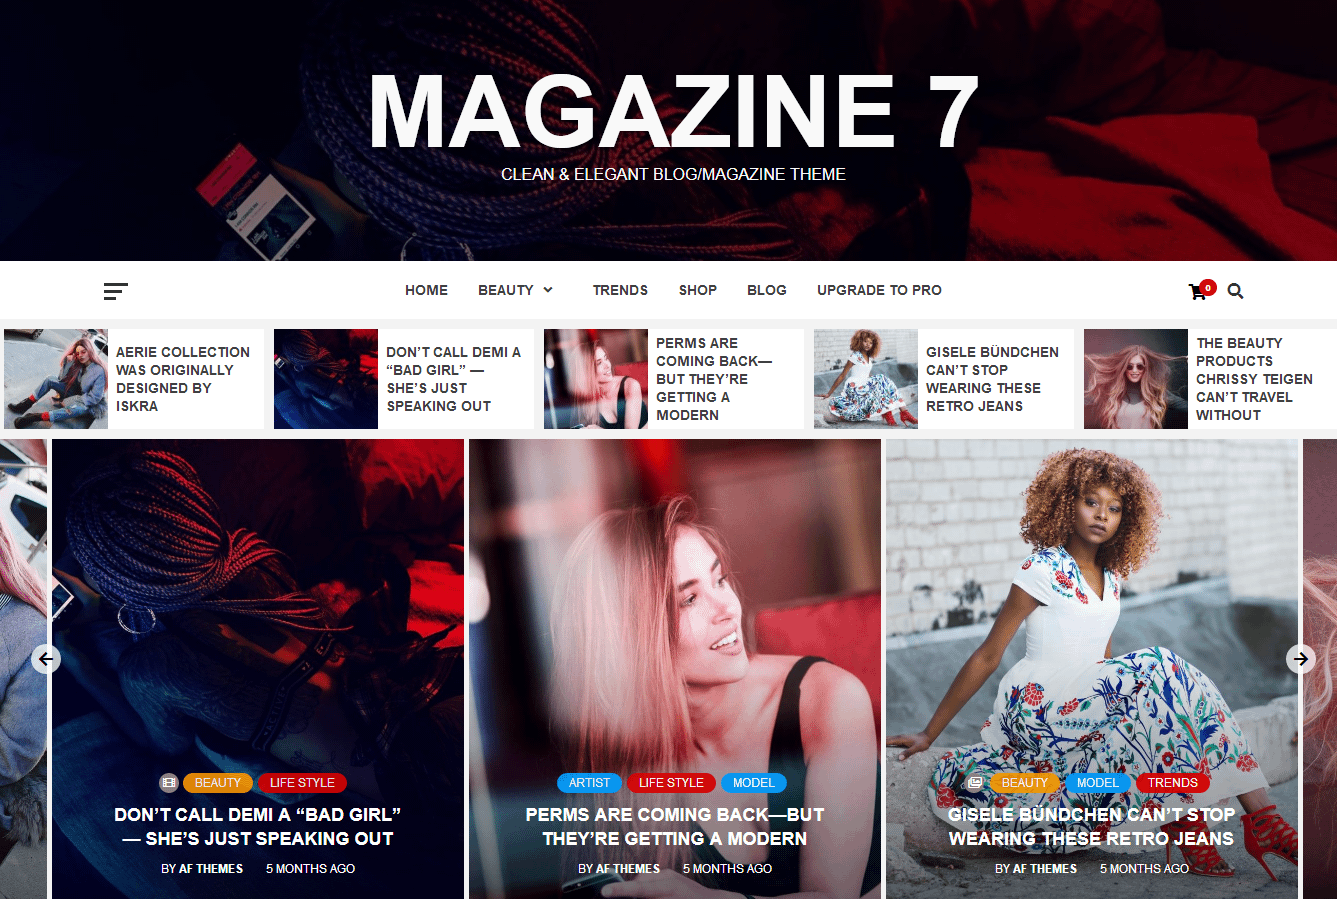 Magazine 7 Free WordPress Magazine Theme - 21+ Best Free WordPress Themes (July 2018 Releases: Hotel, Business, Lawyer, Blog, Magazine, Education, Photography and more...)